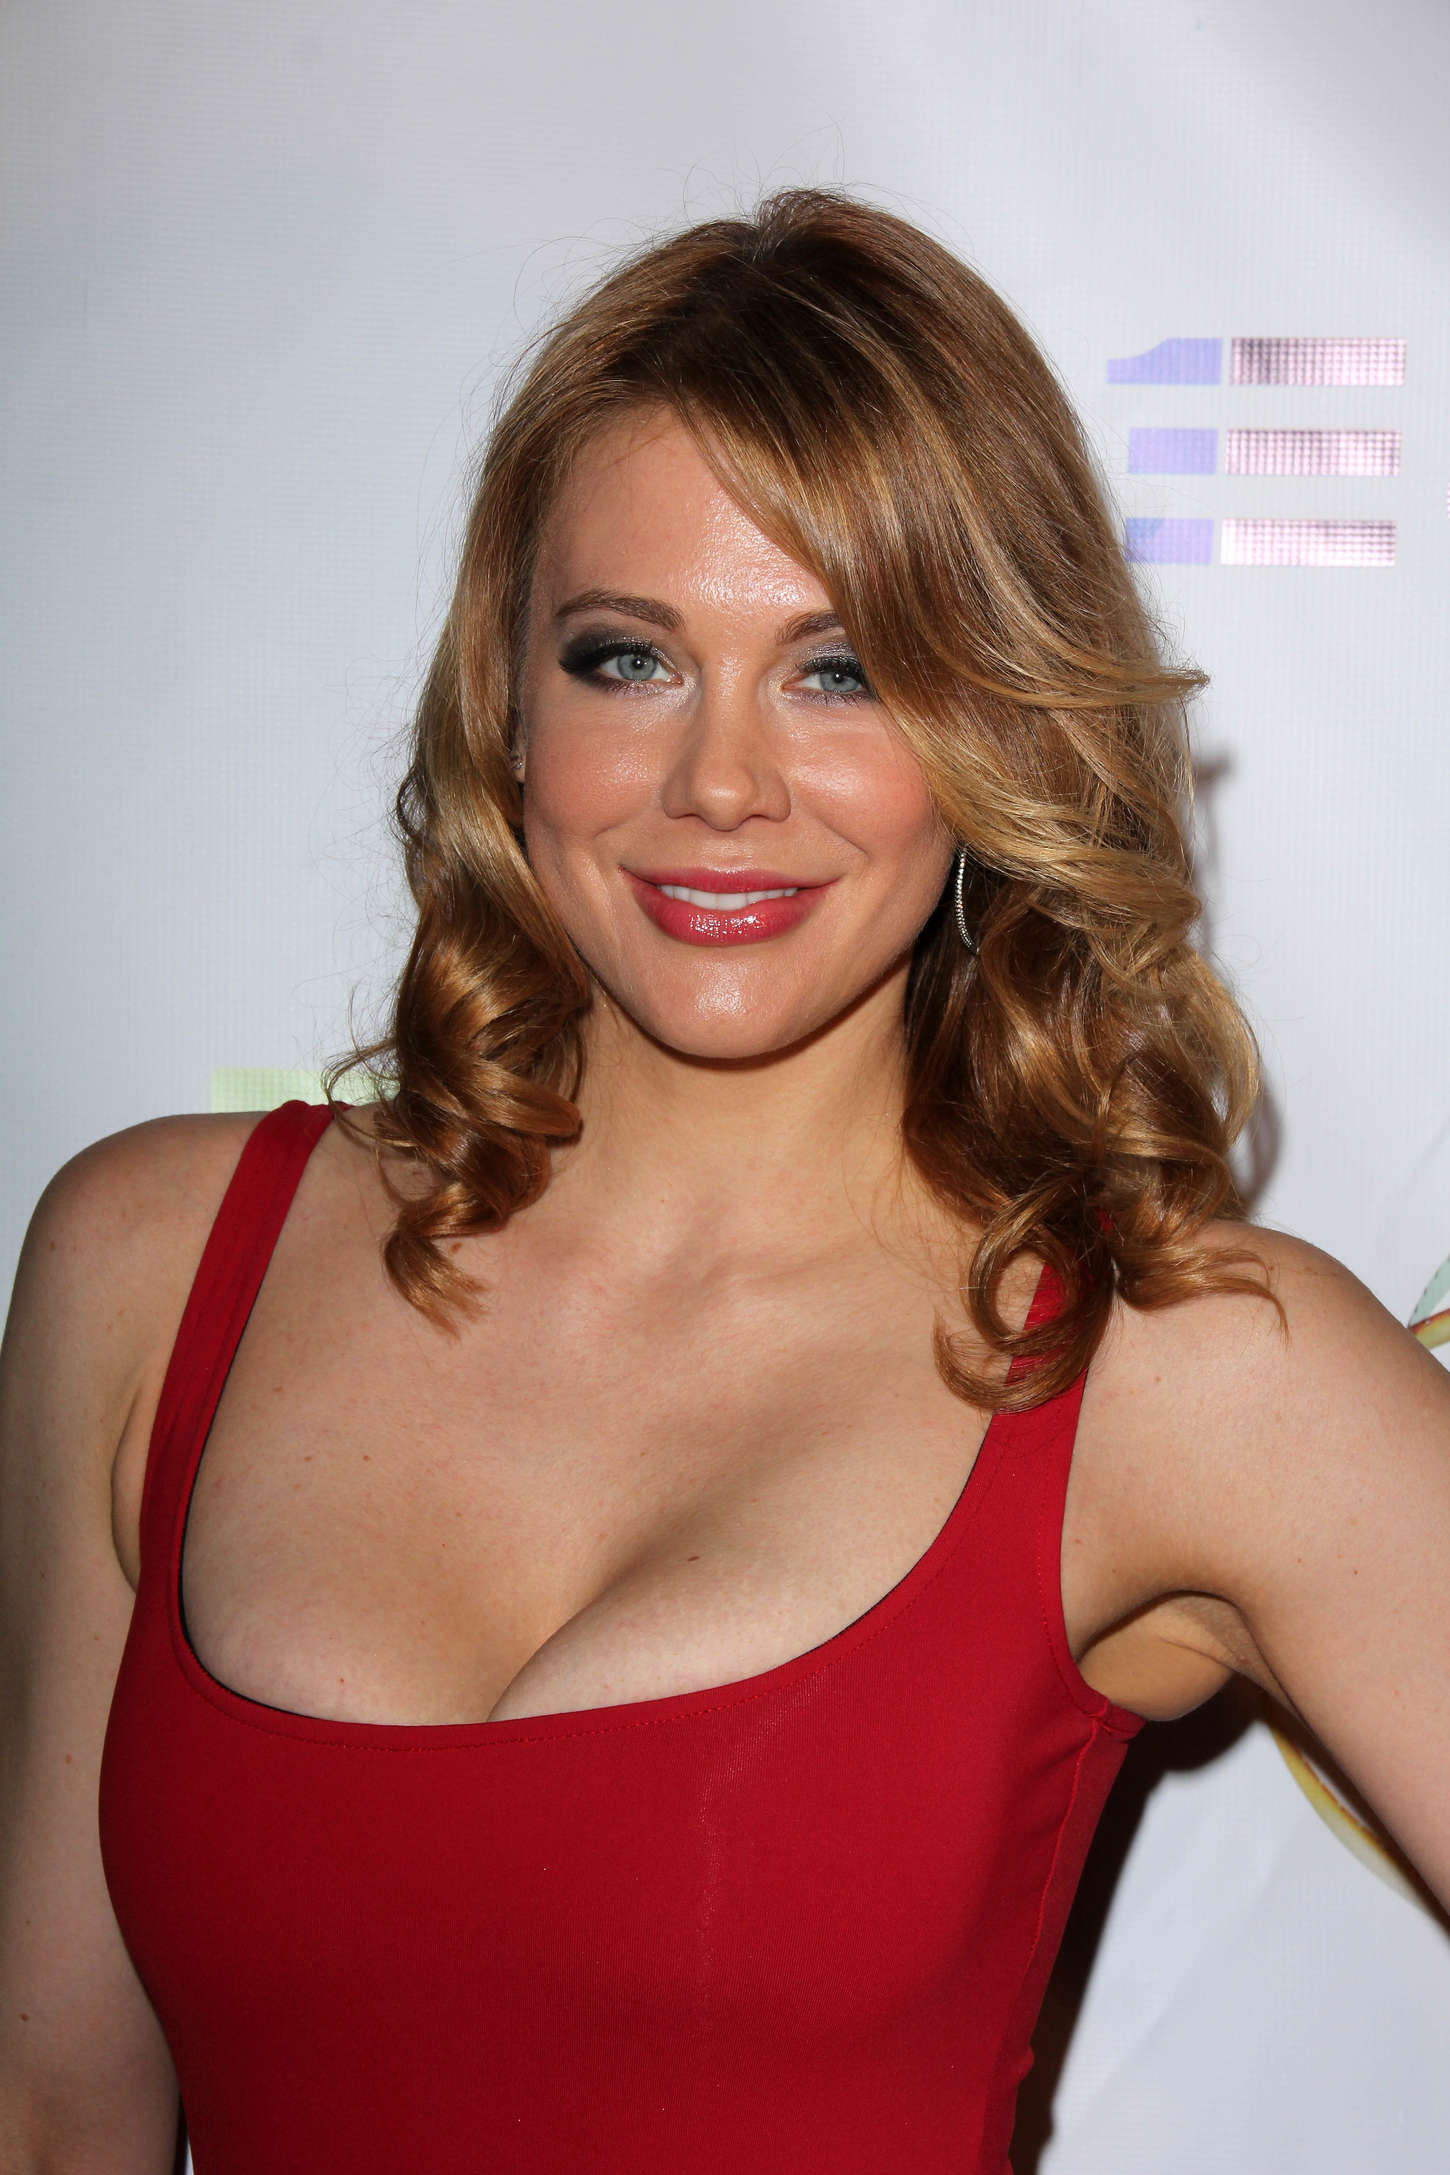 Hot Maitland Ward naked (76 photo), Topless, Bikini, Selfie, underwear 2018